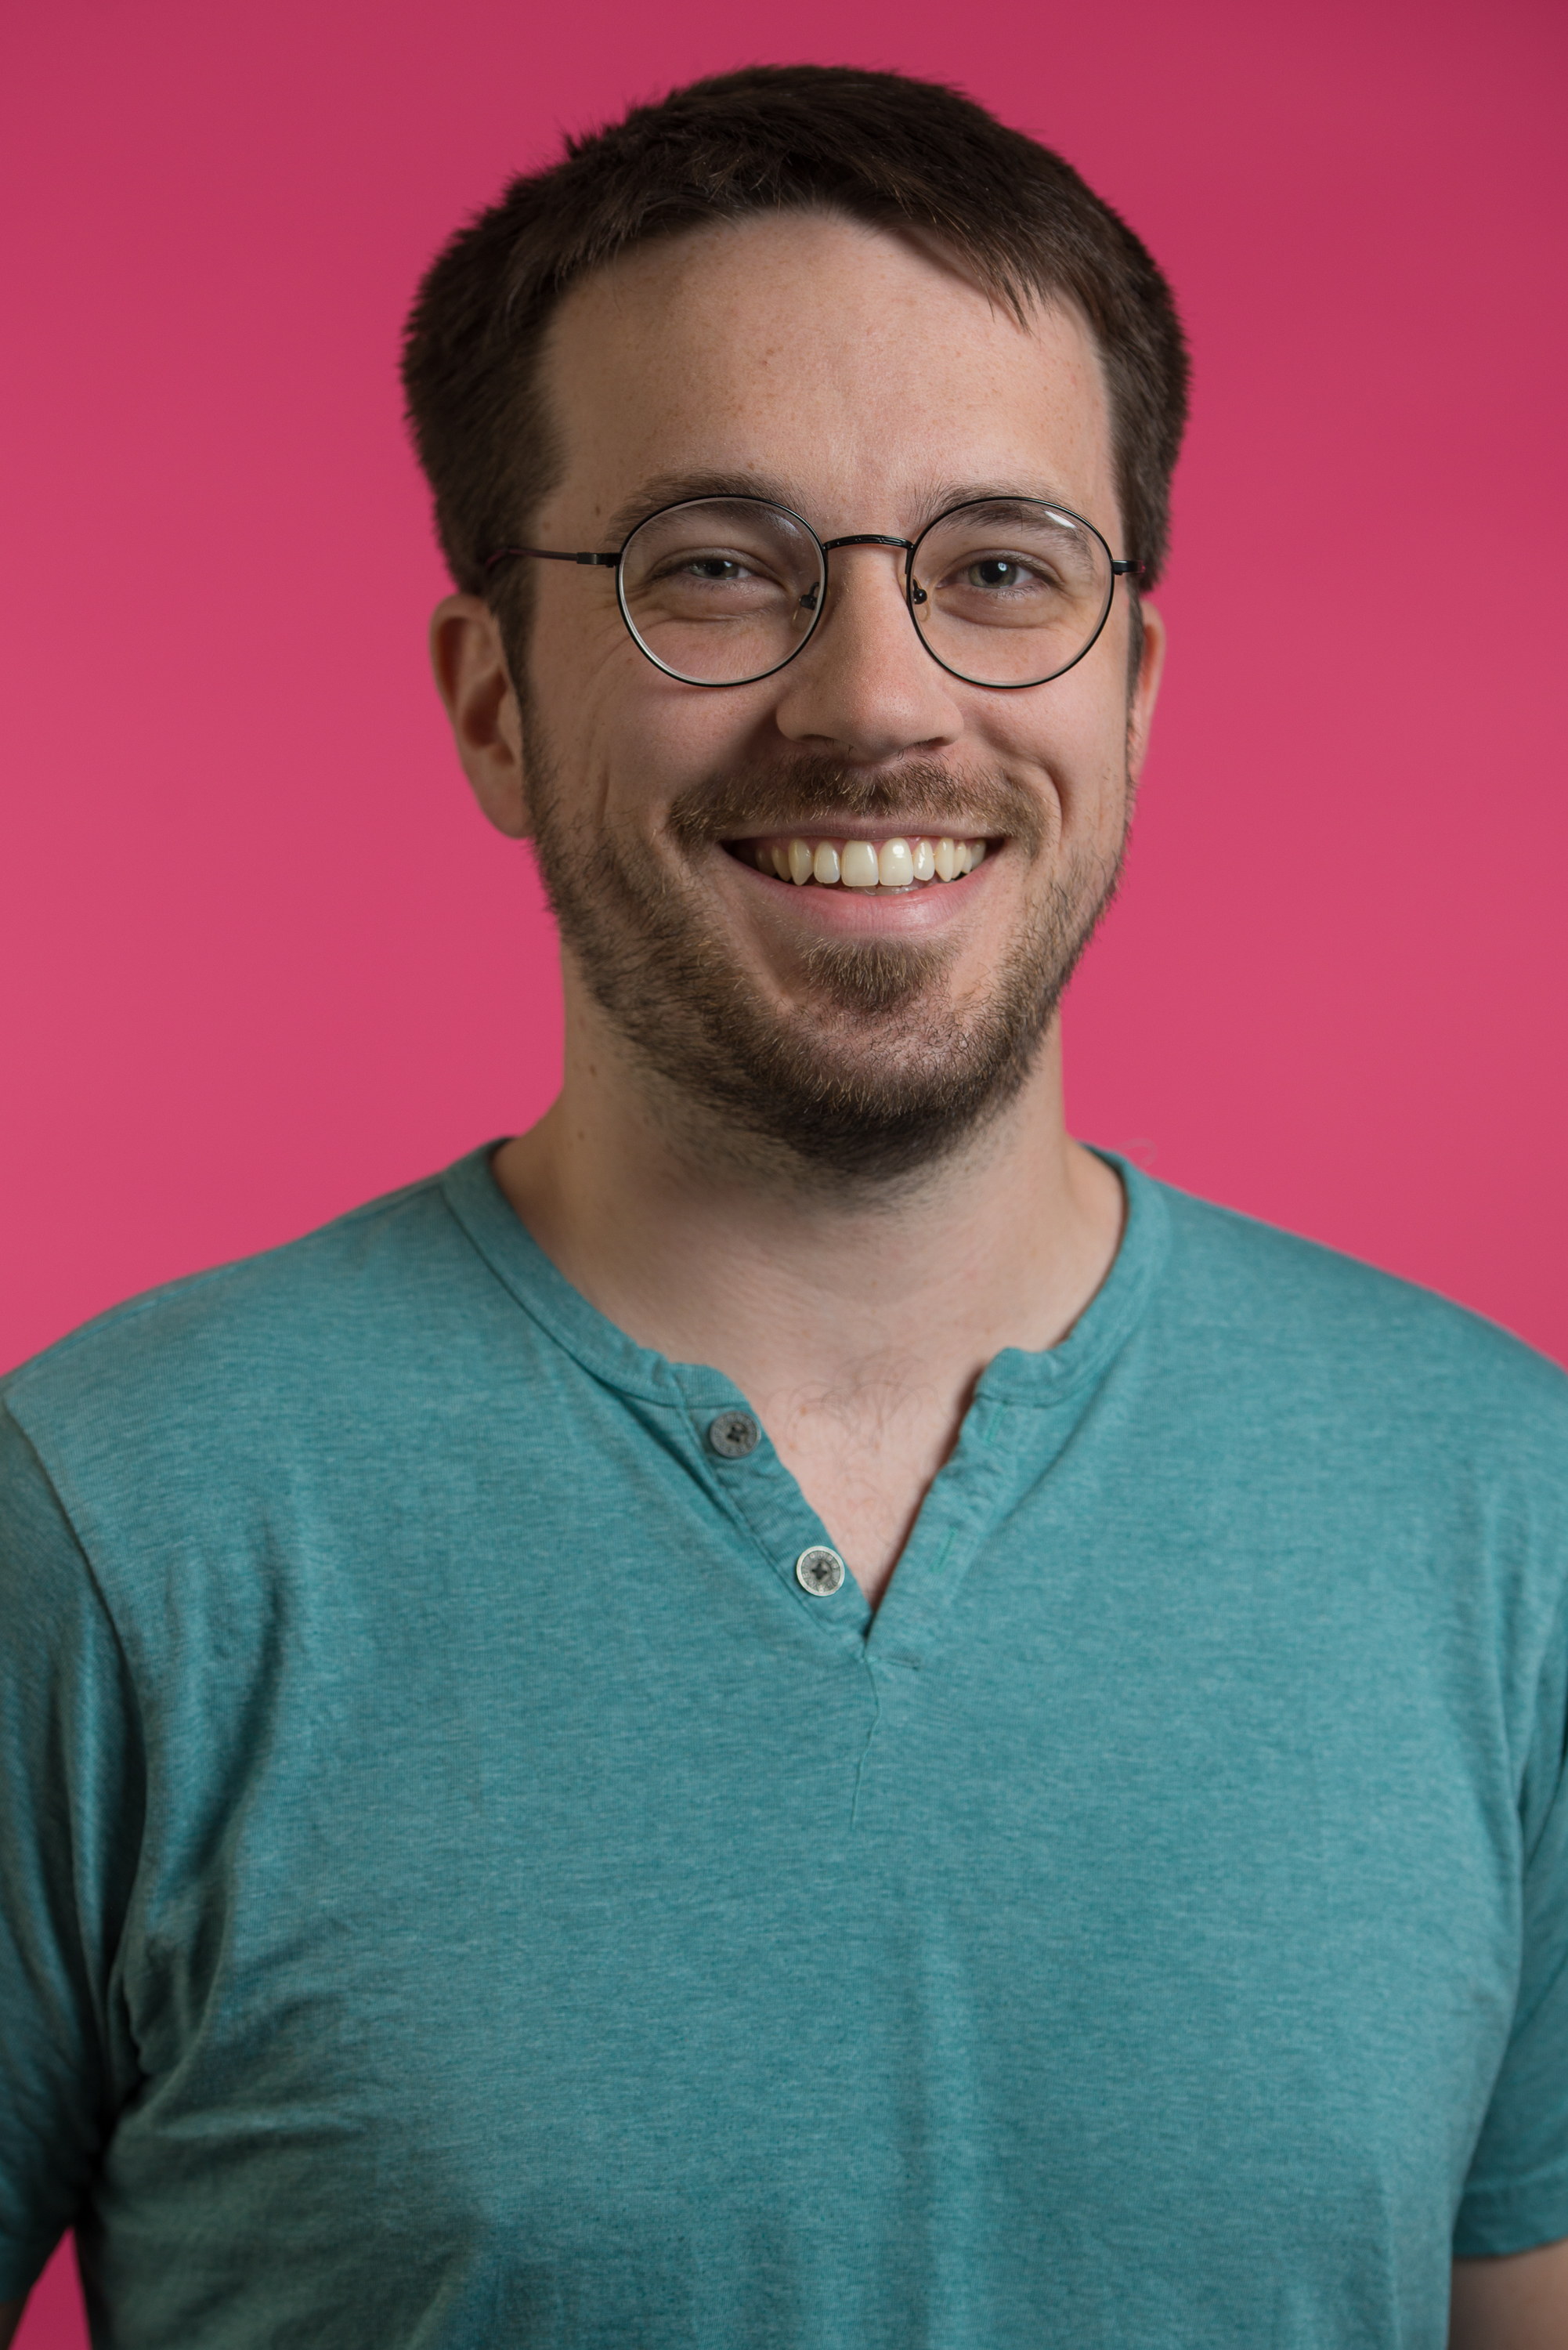 Tim Lewis - Senior Editor | ProductionTim is an award-winning video producer and editor from Pembroke, MA. His passion for production began at age 10 with his own cable access show, Where in the Town is Mister Travels? As an Emerson College graduate, Tim strives to bring innovation and creativity to everything he works on, and as the newest member of the team, he is quickly learning the ropes of H.264 codec best practices and ideal cold brewing consumption. In his spare time, Tim enjoys Dogspotting, growing his YouTube channel, and traveling to new countries on his ever-expanding wanderlust.